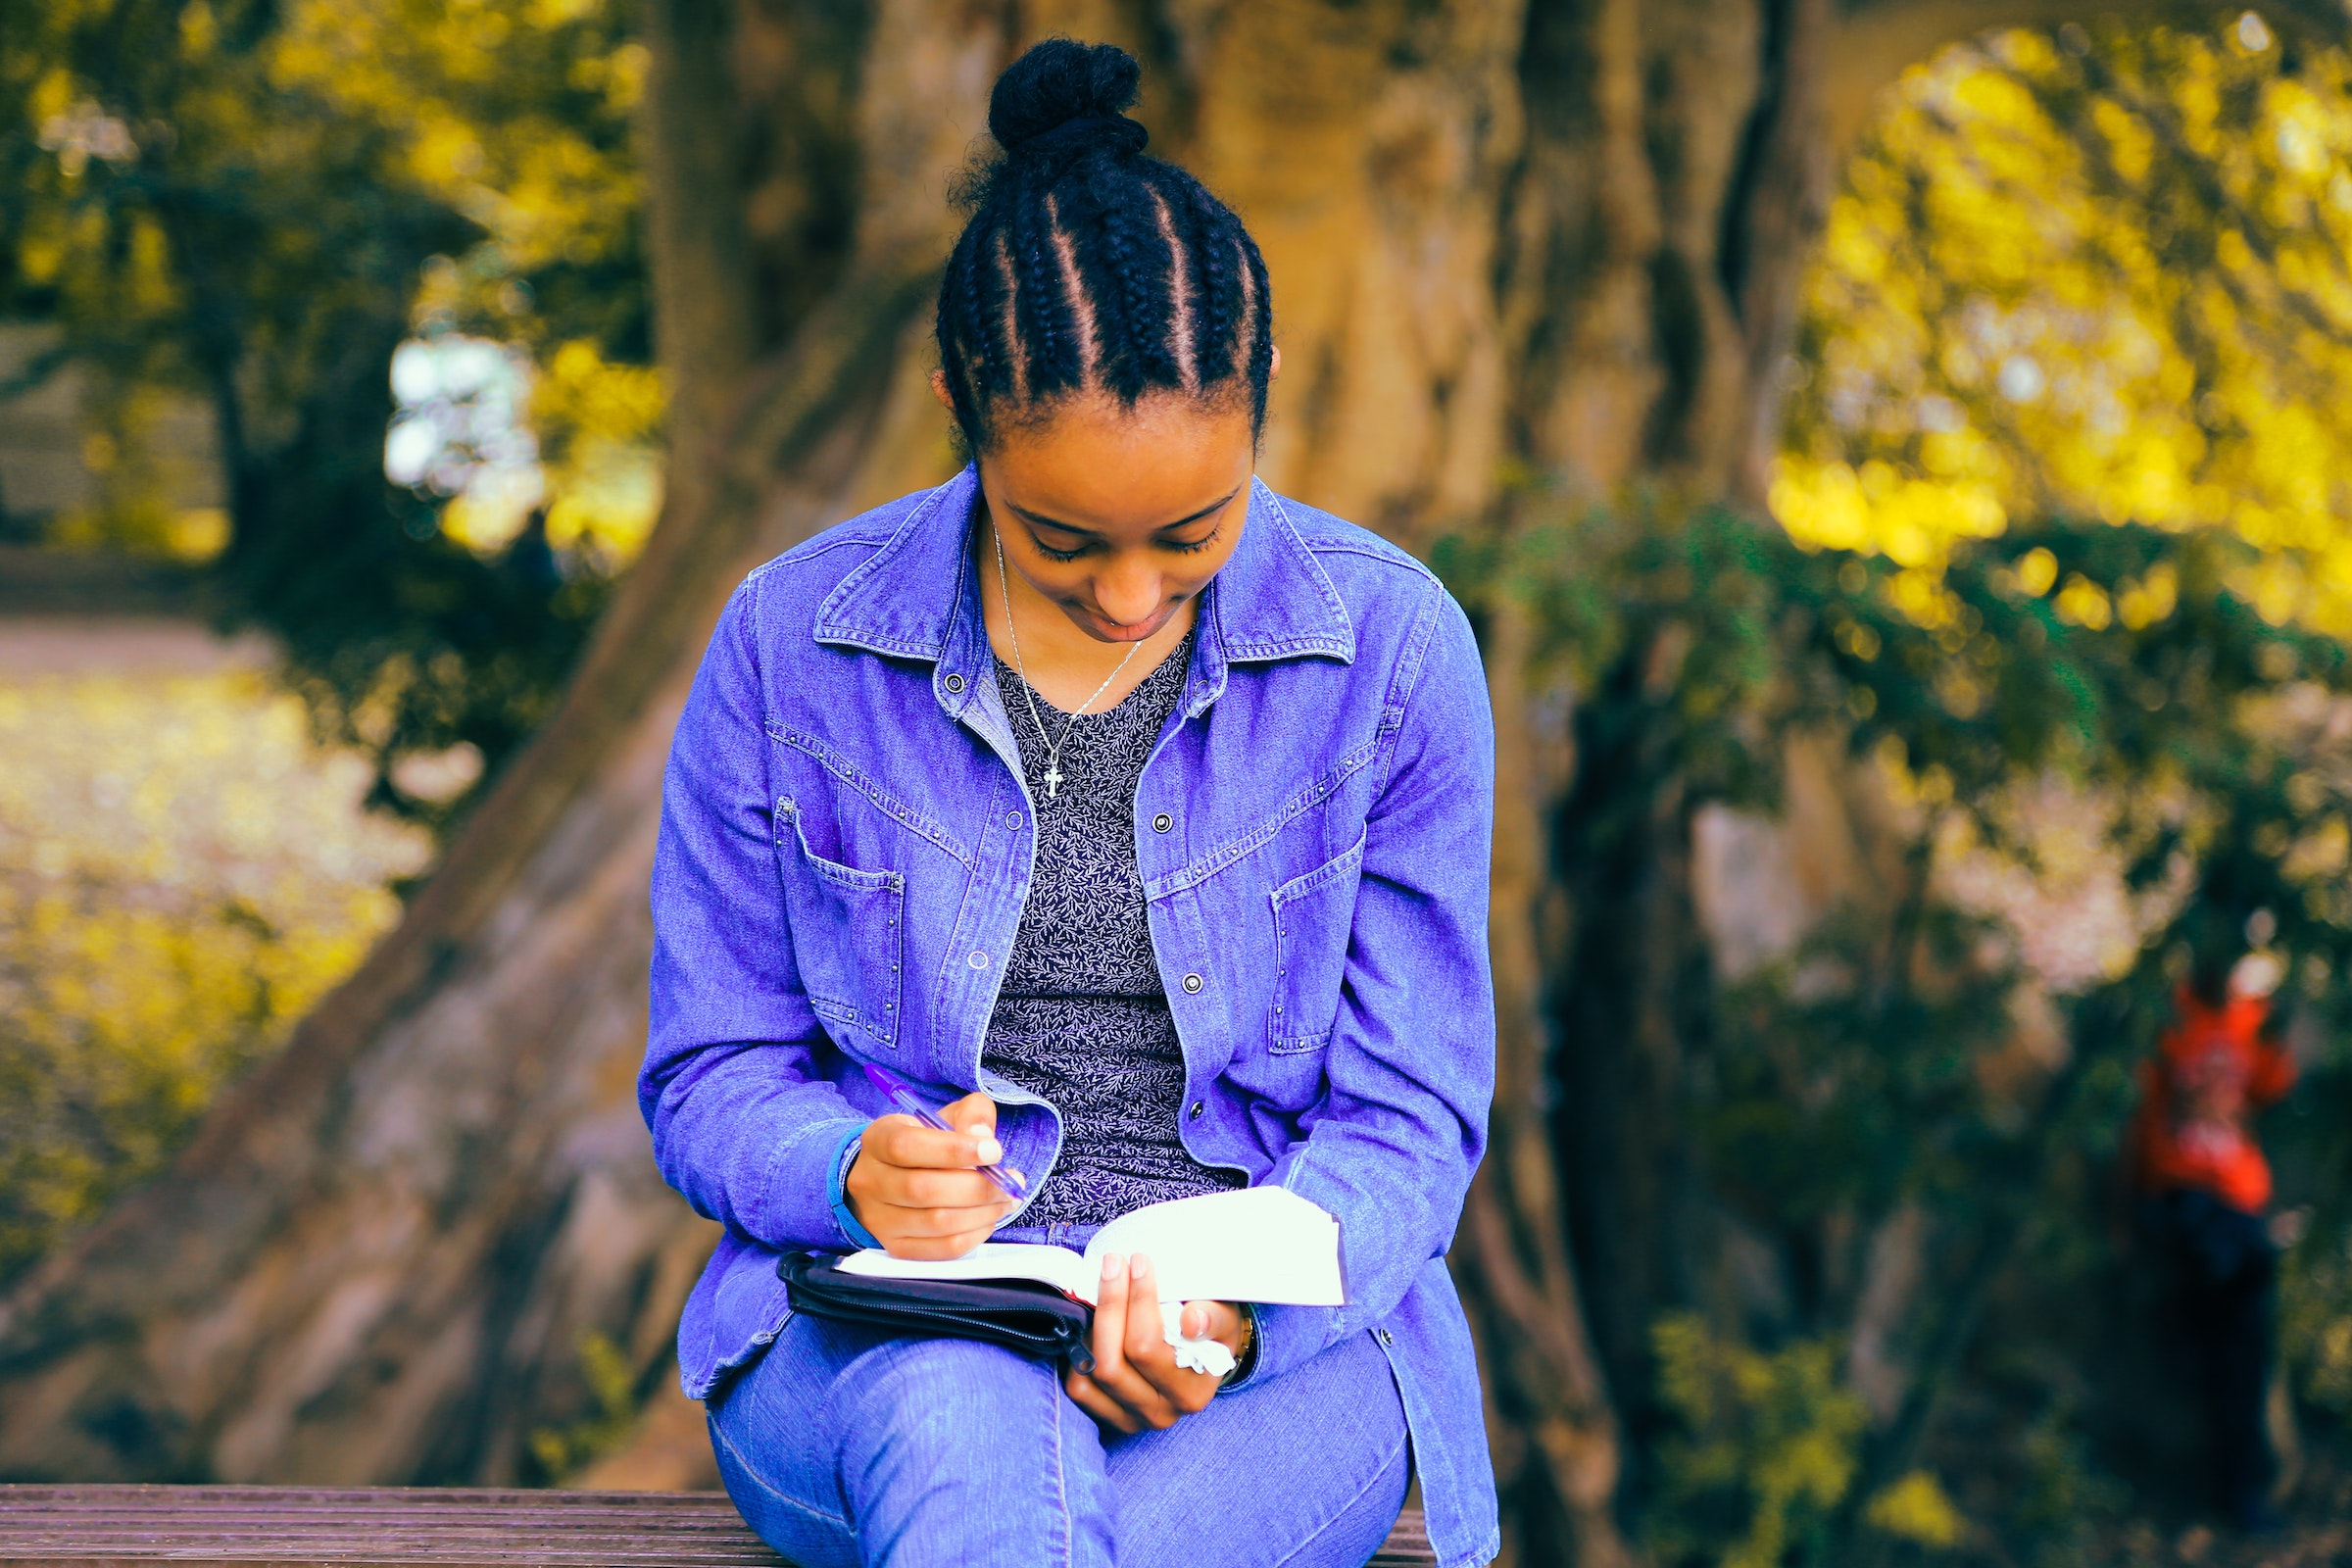 A young Black woman with braids sits on an outdoor bench reading a book on her lap. She's wearing a denim jacket and jeans and there is a big tree with yellow flowers behind her.